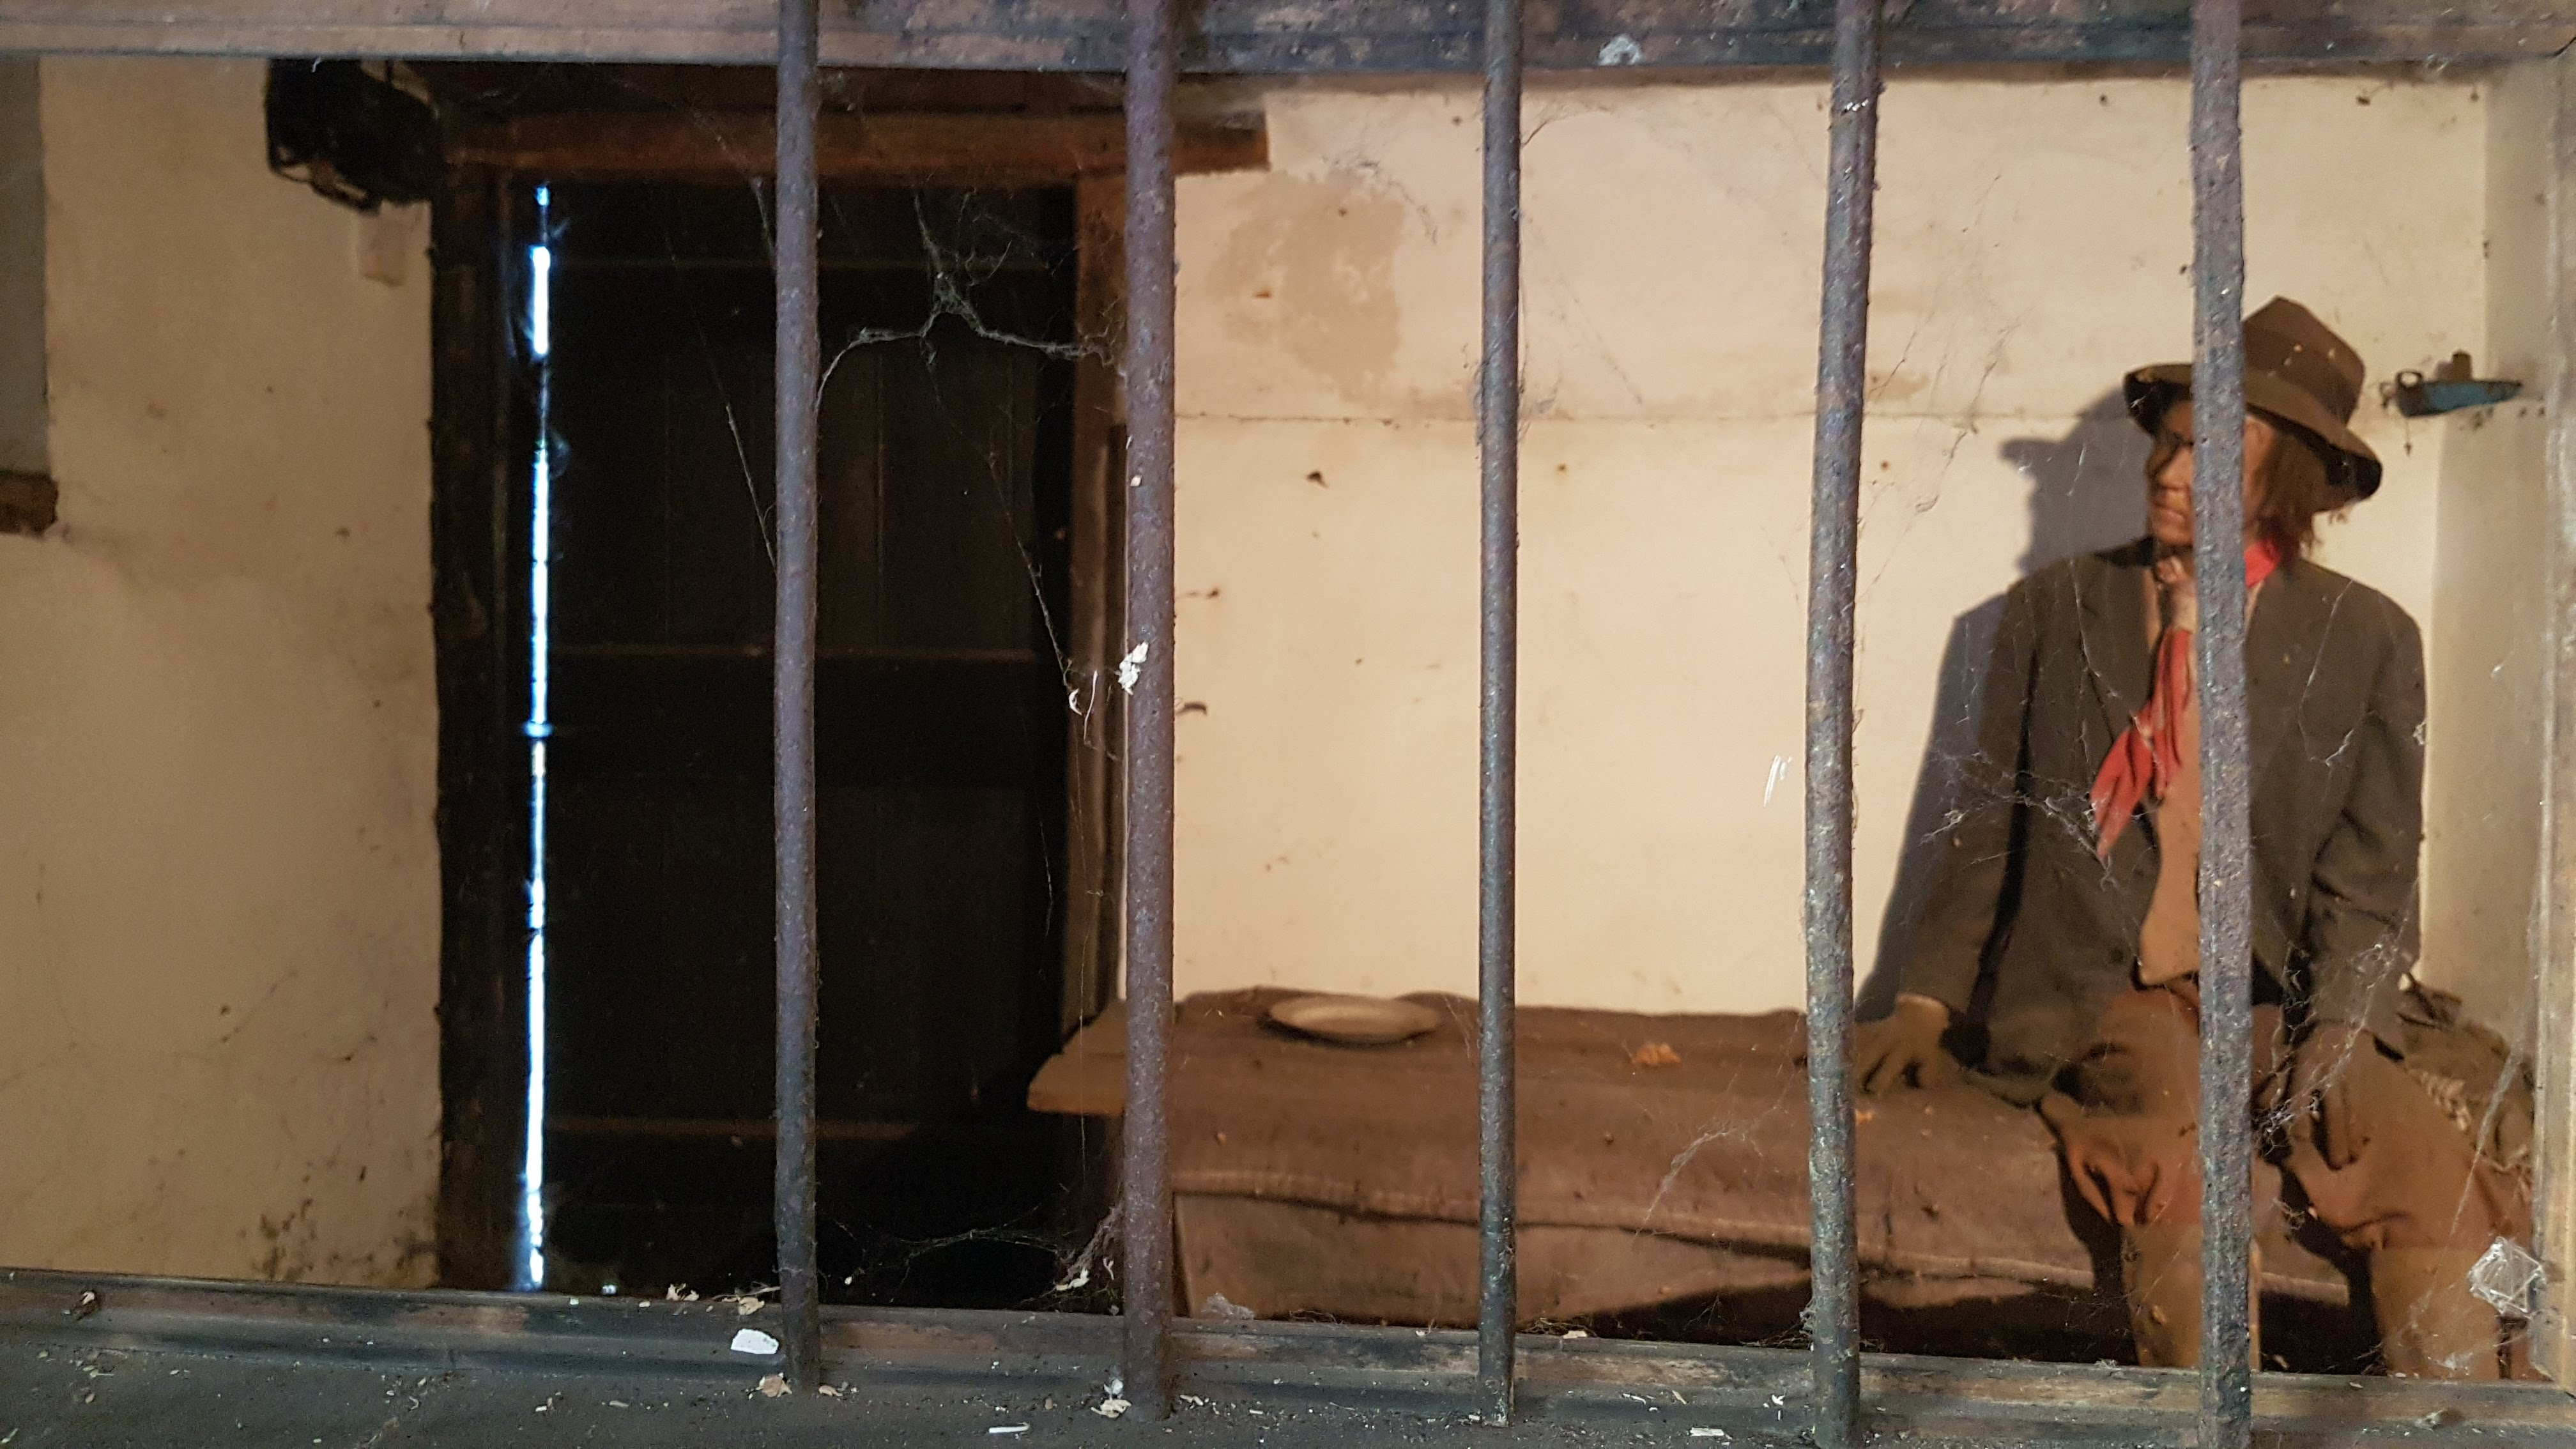 Interior of the second cell, viewed through the cut out. The entrance to the second cell can be seen in the left-hand corner. The corner of the window (seen on the exterior) is also visible on the far left. A mannequin has been placed in the cell to show what it would have looked like with a prisoner inside, together with a wooden bed and a chamber pot.